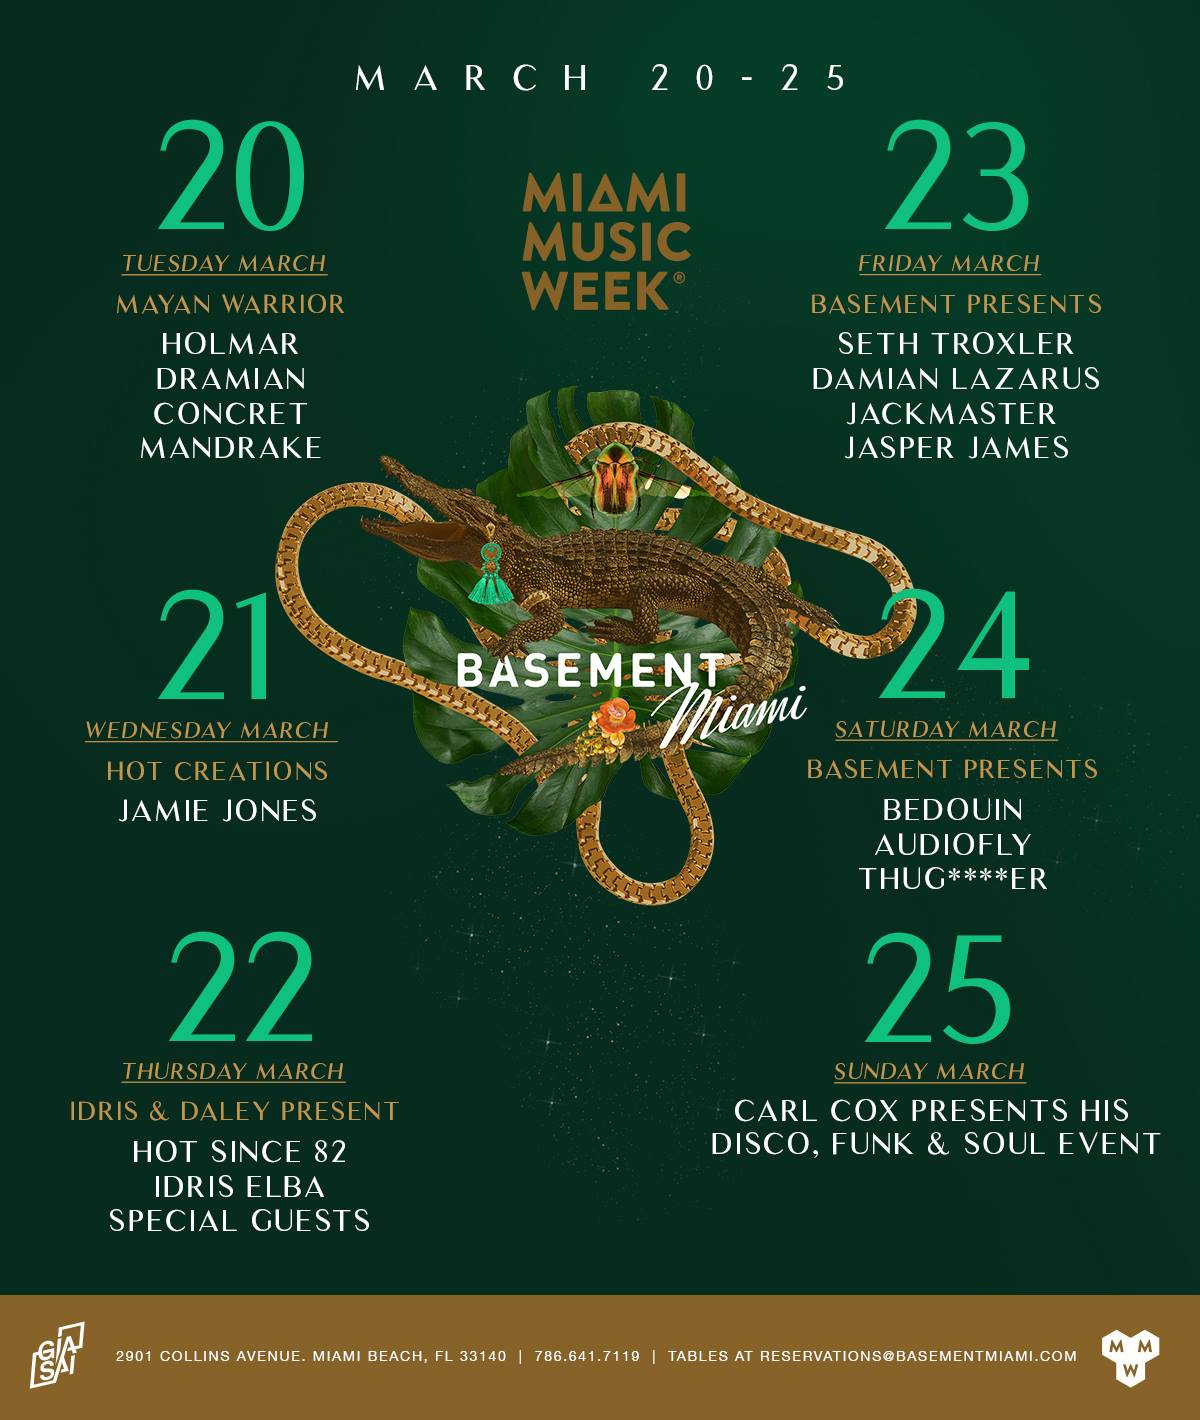 Idris Elba, Hot Since 82 & Special Guests | Miami Music Week